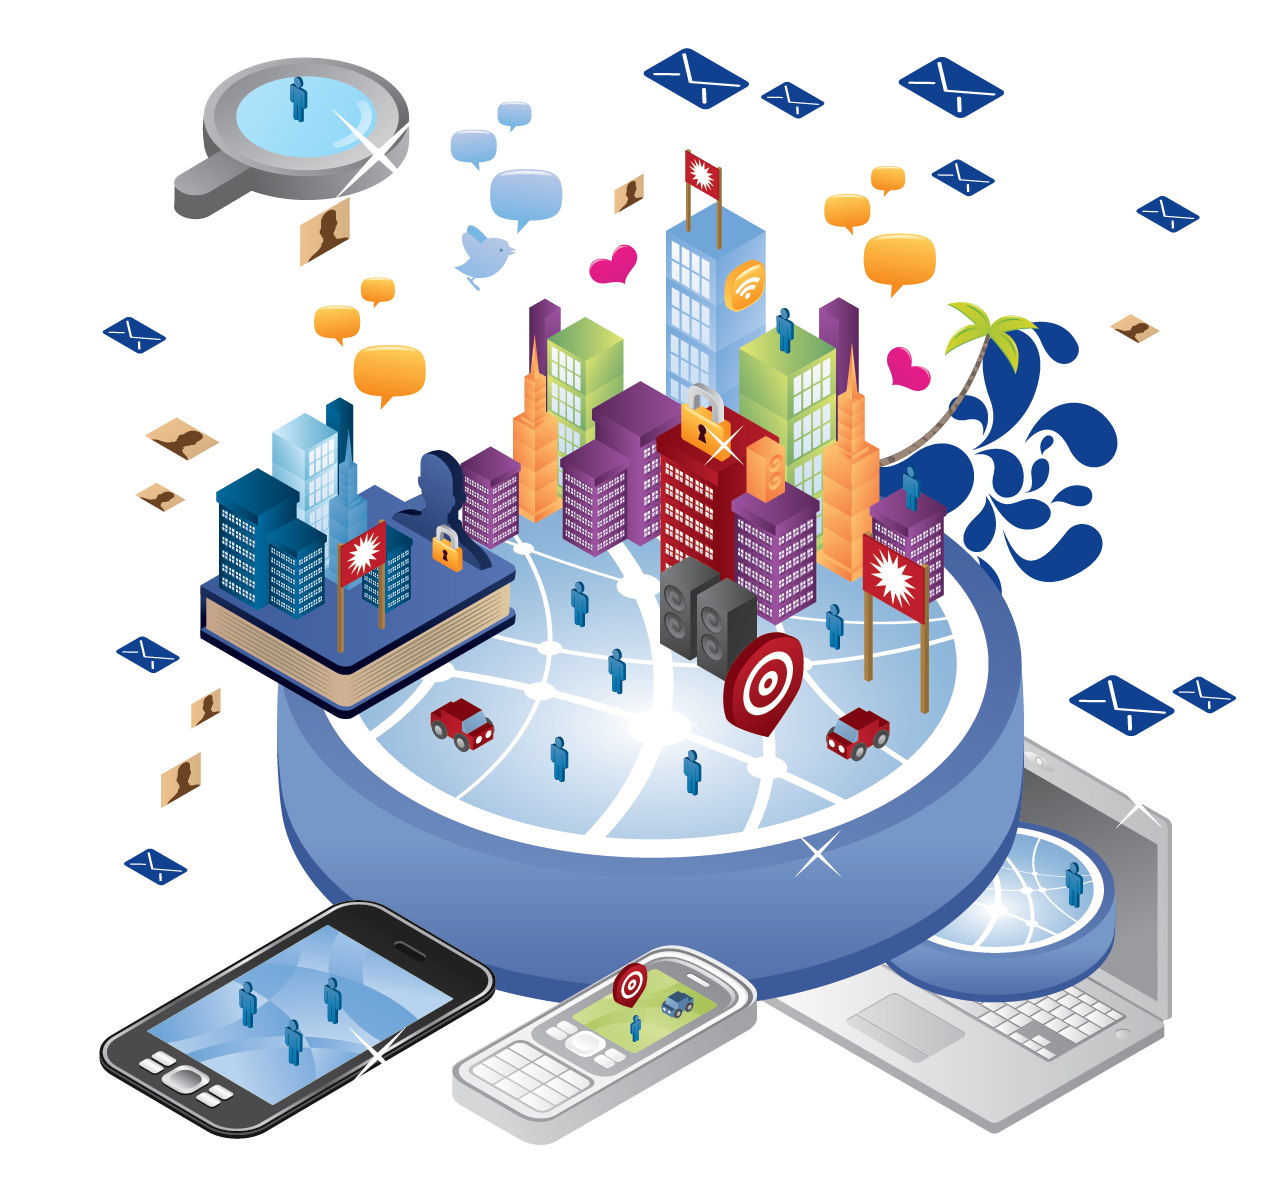 BCN, mobile y smart city